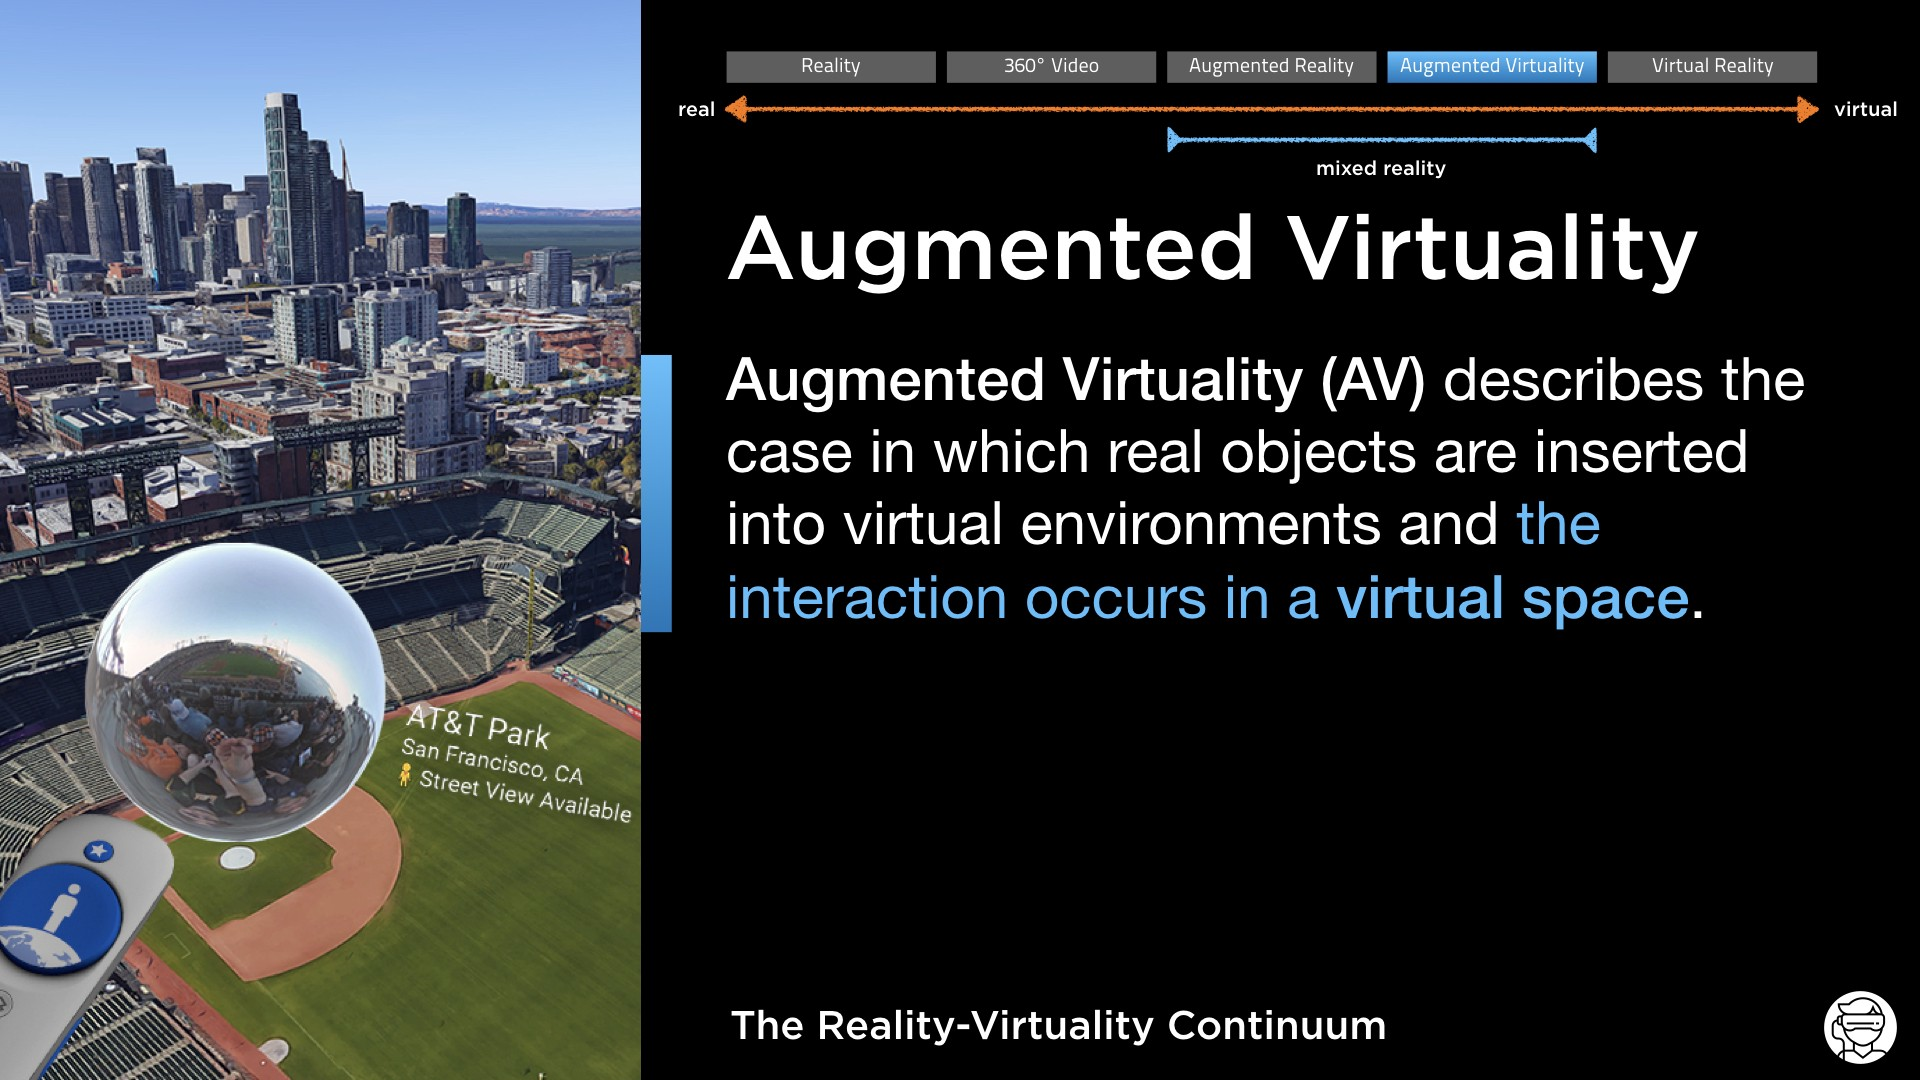 Augmented Virtuality